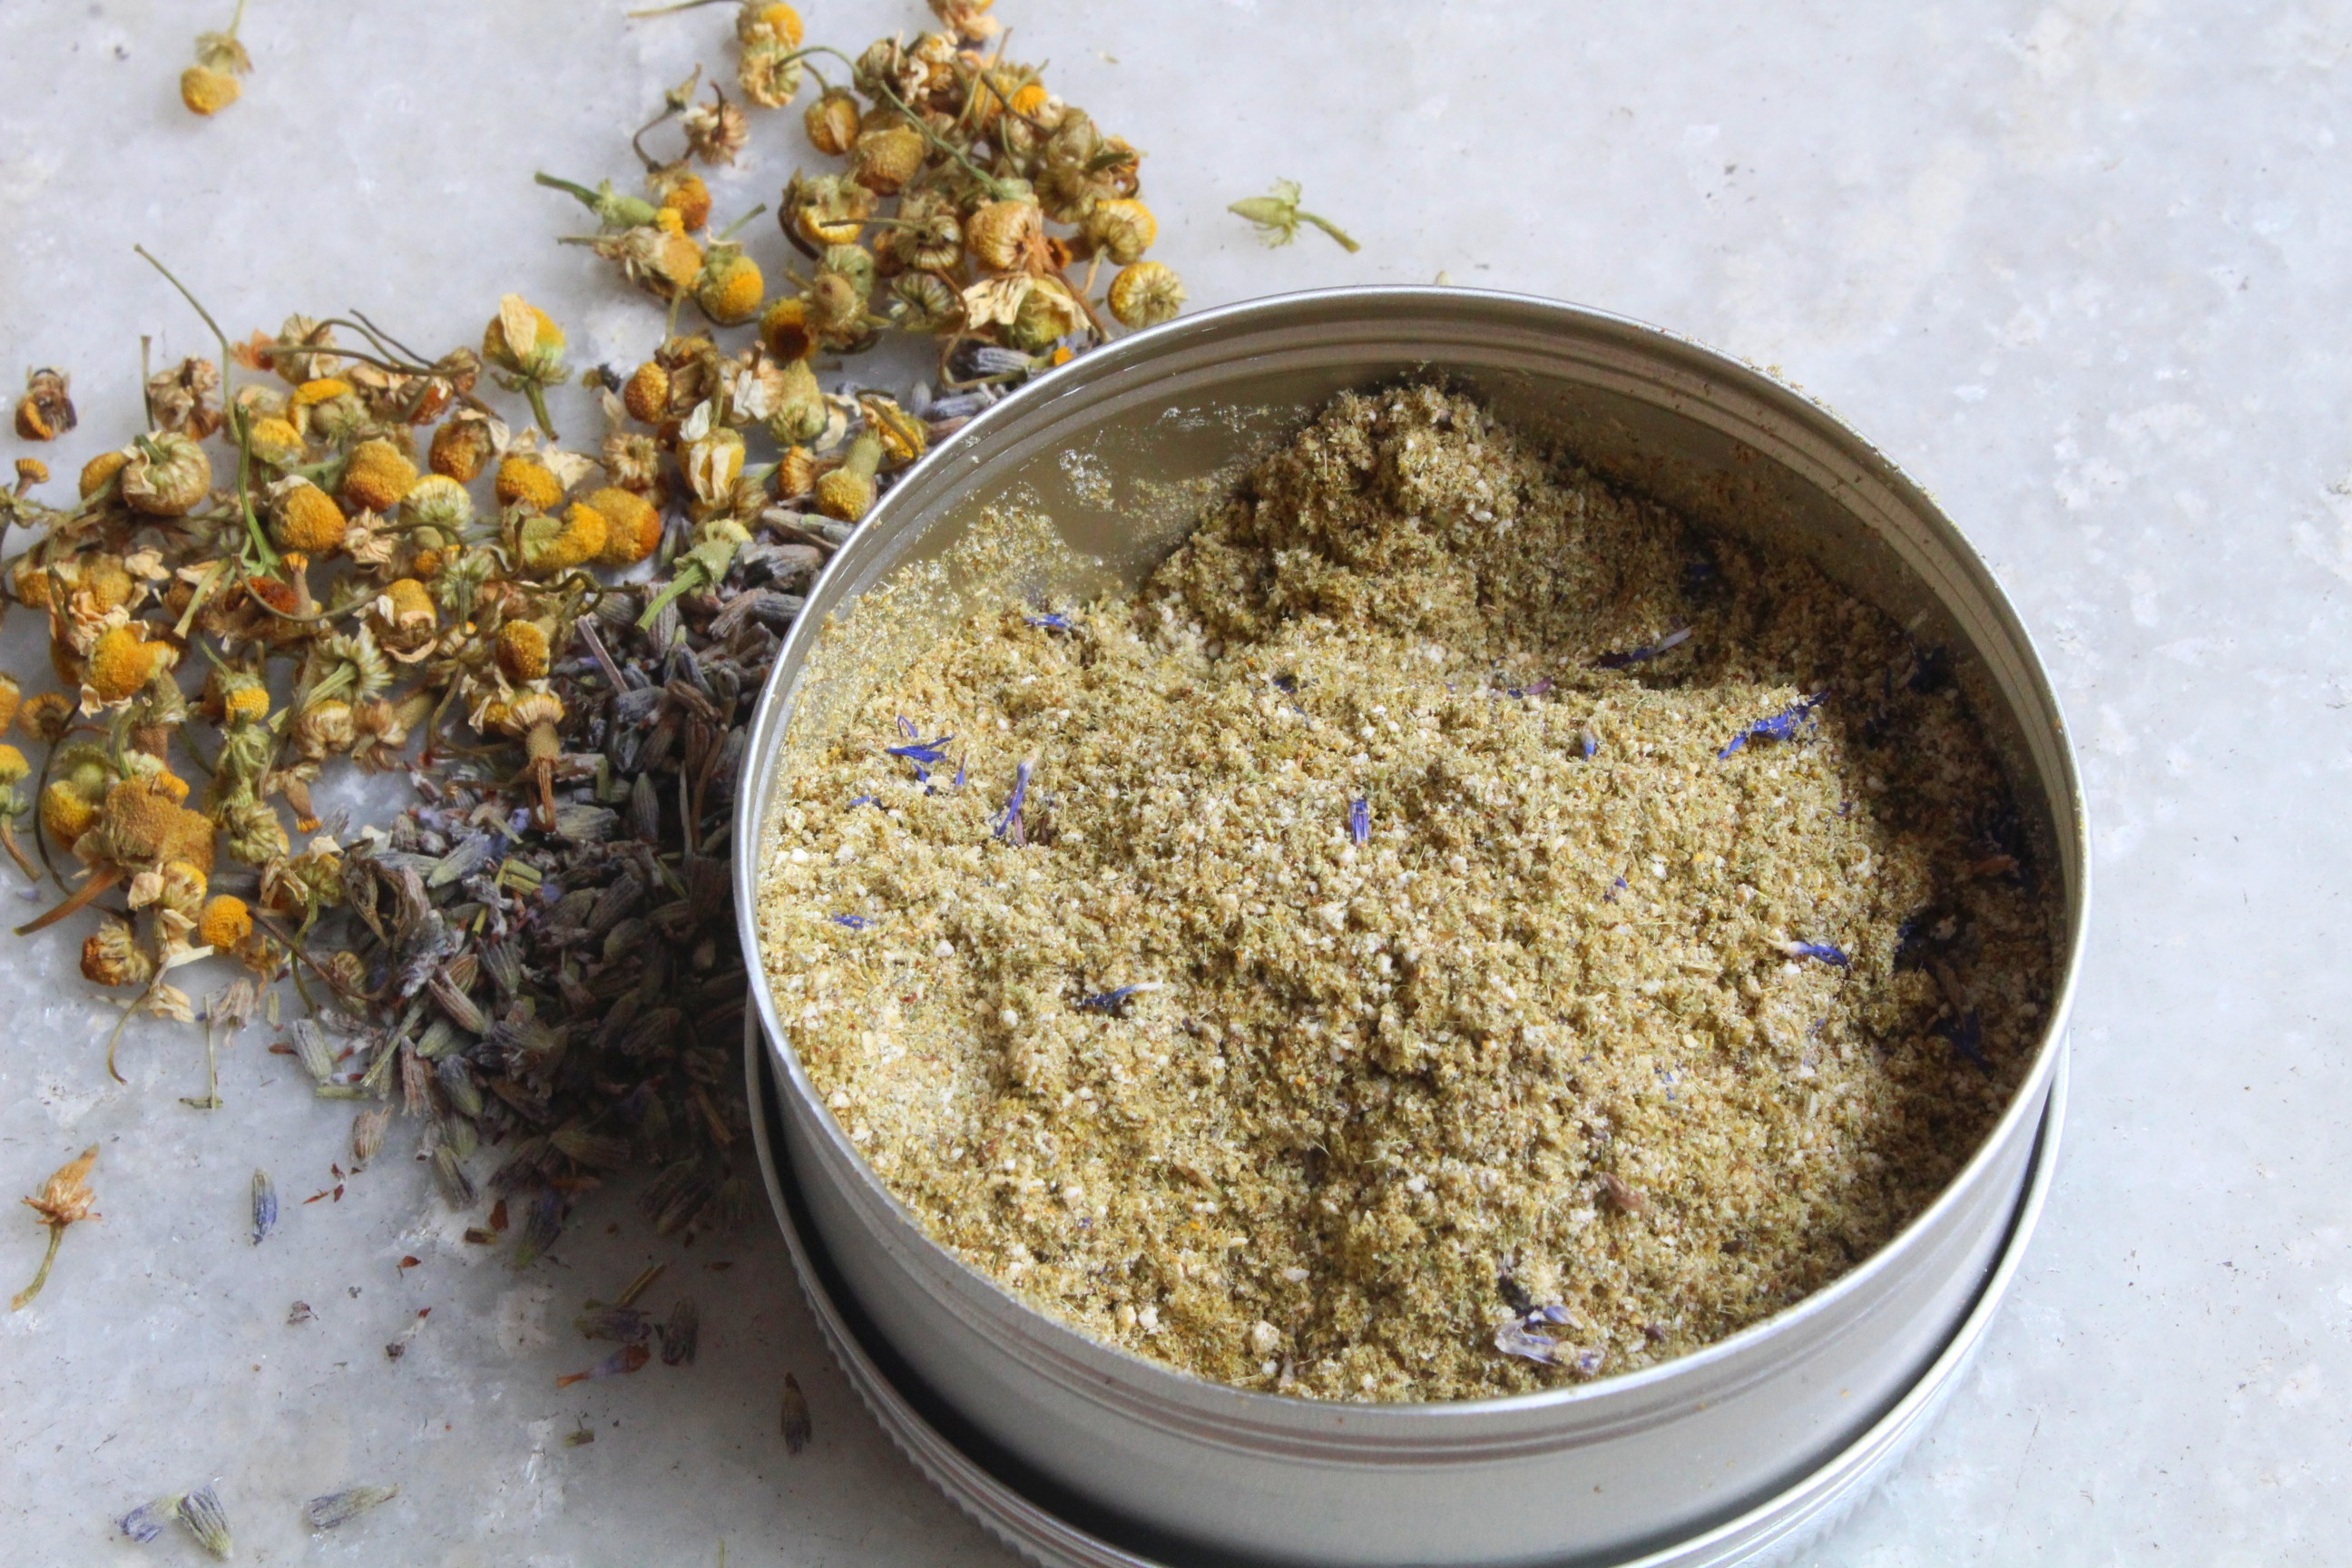 diy face scrub, diy body scrub, blend it raw beauty, blend it raw apothecary